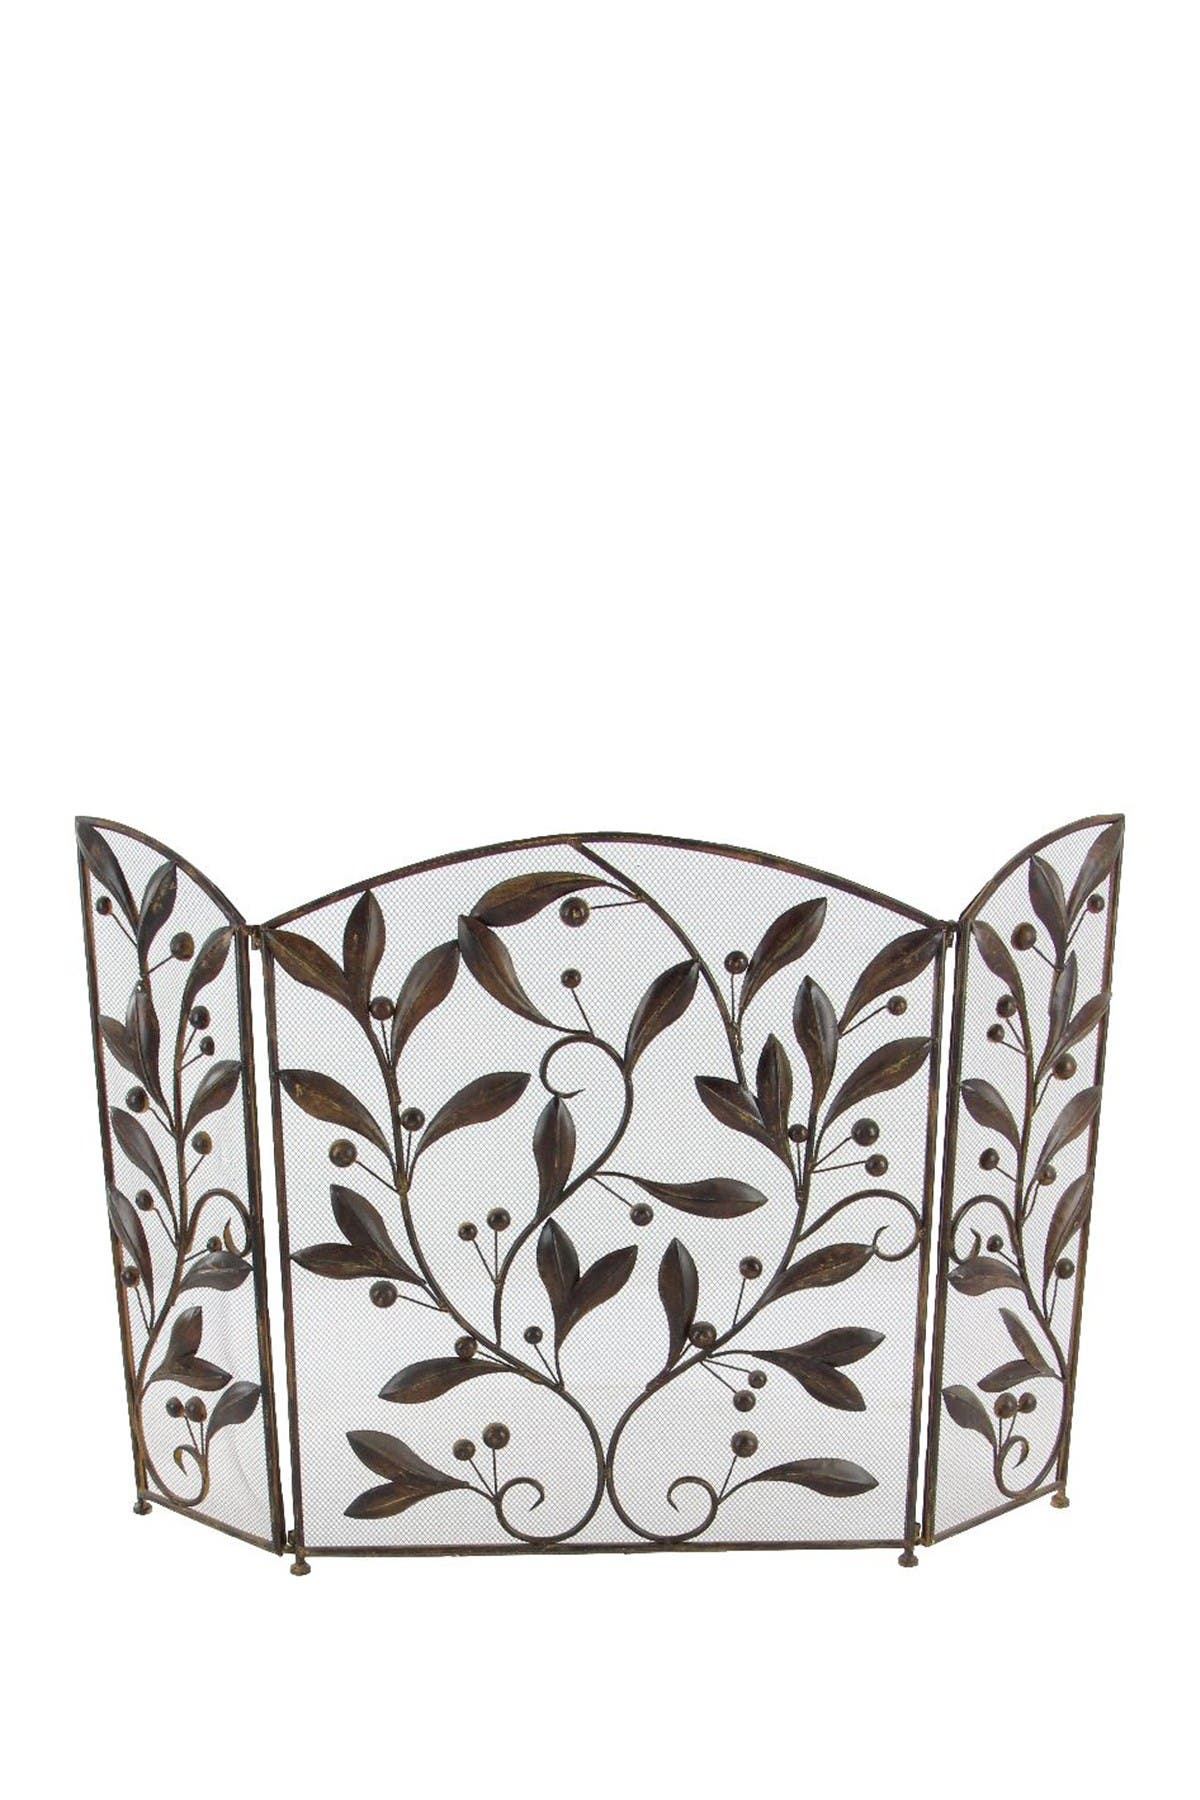 Image of Willow Row Traditional Iron Ornate Leaf Fireplace Screen